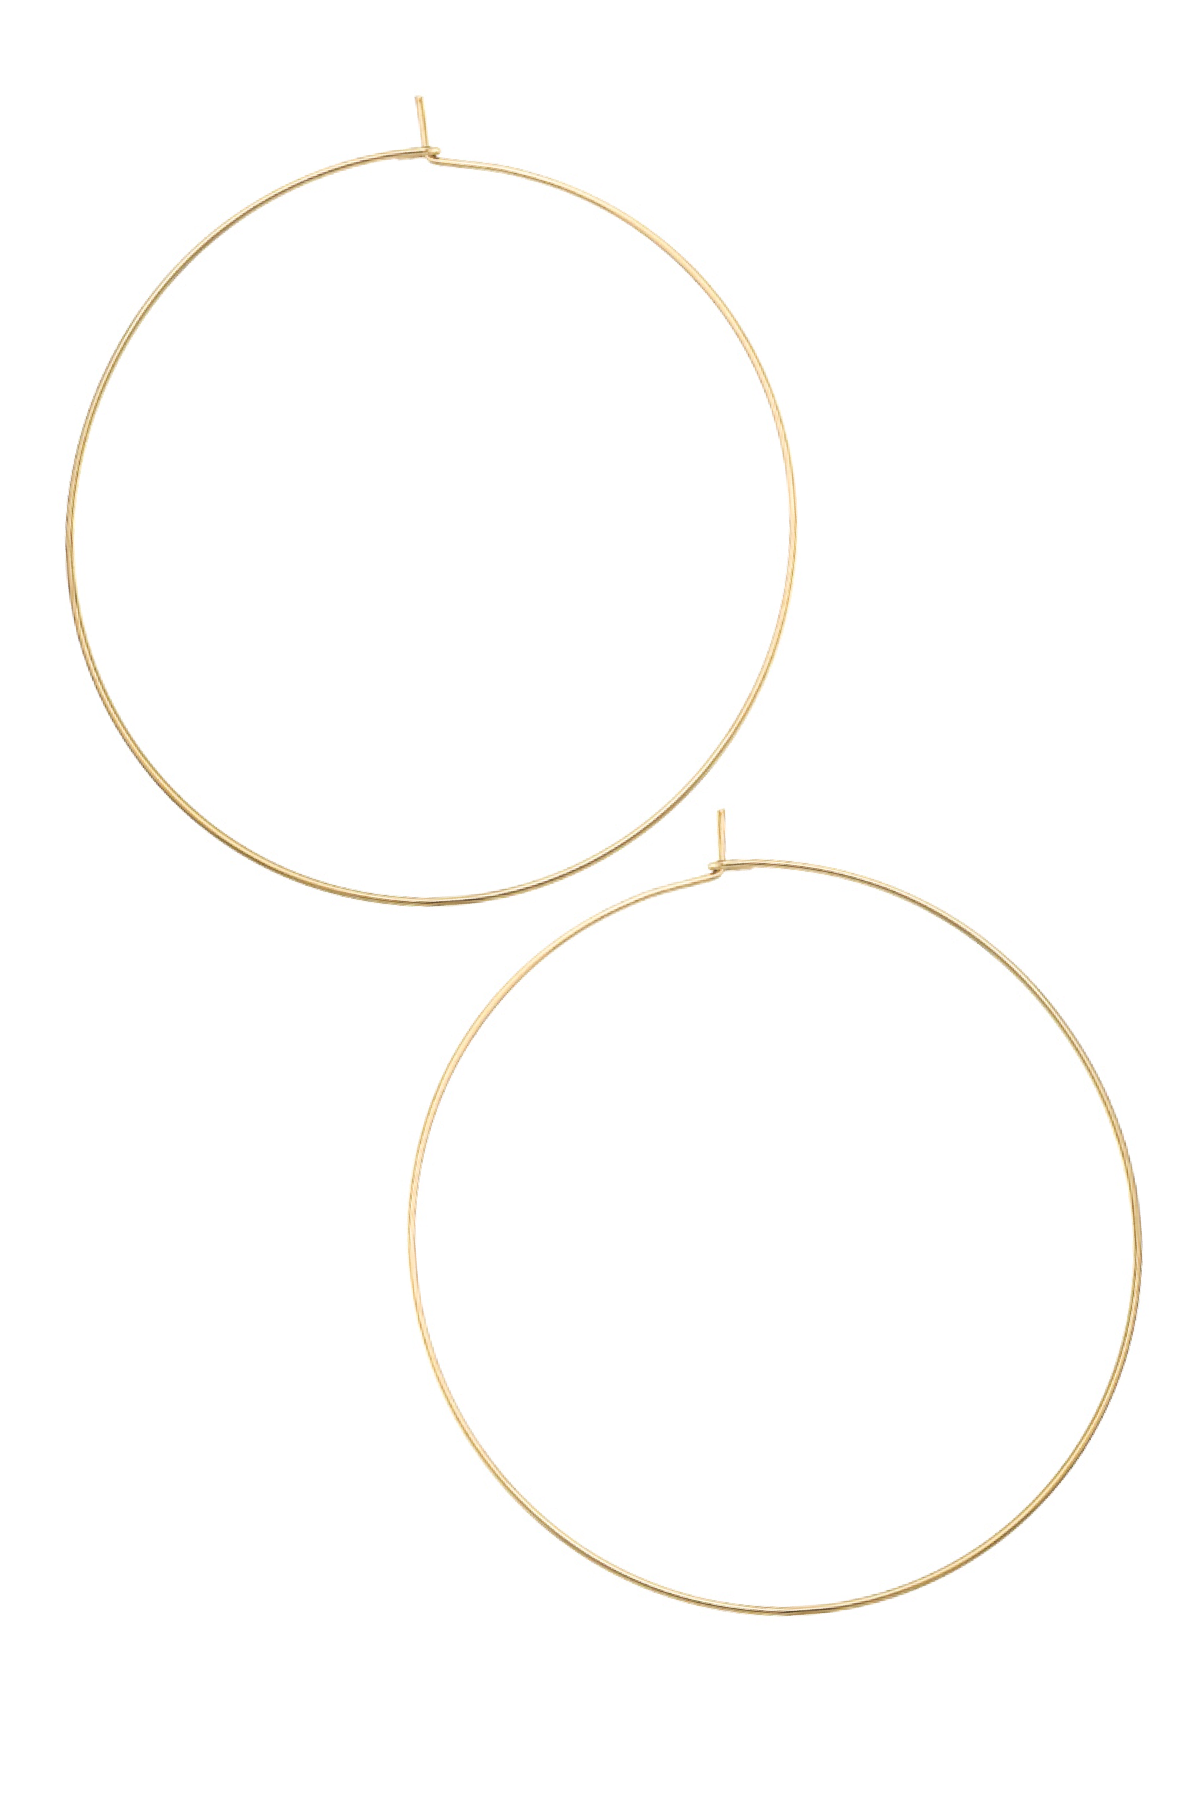 WIRE THIN GOLD HOOPS